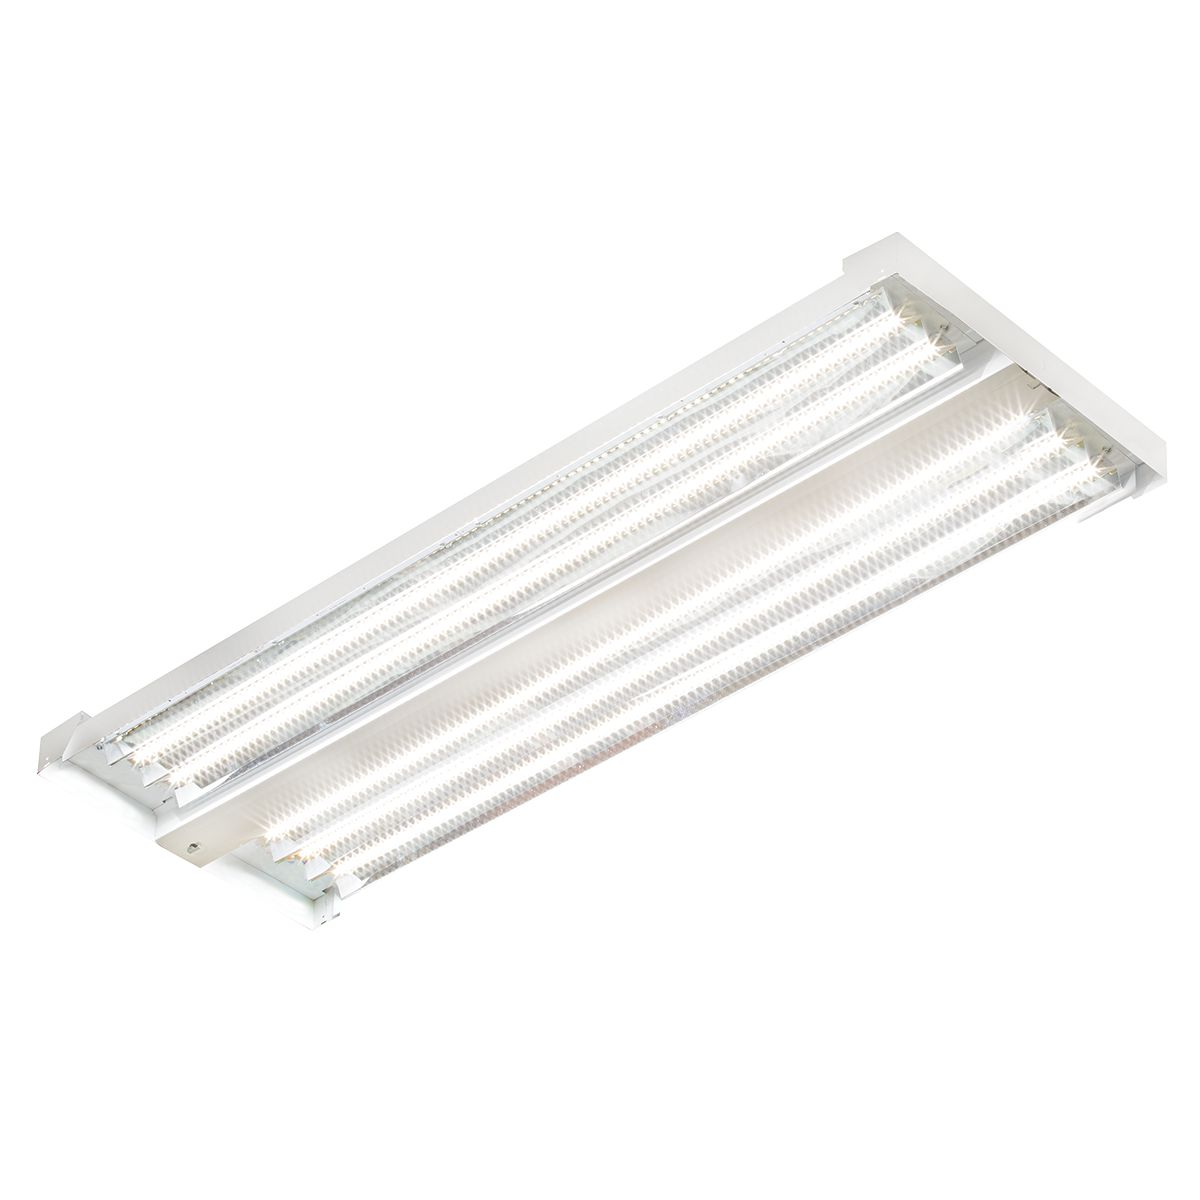 LLHV4-50M-WST-EDU COLUMBIA LED HIGH BAY WIDE DISTRIBUTION 5000K COLOR TEMP